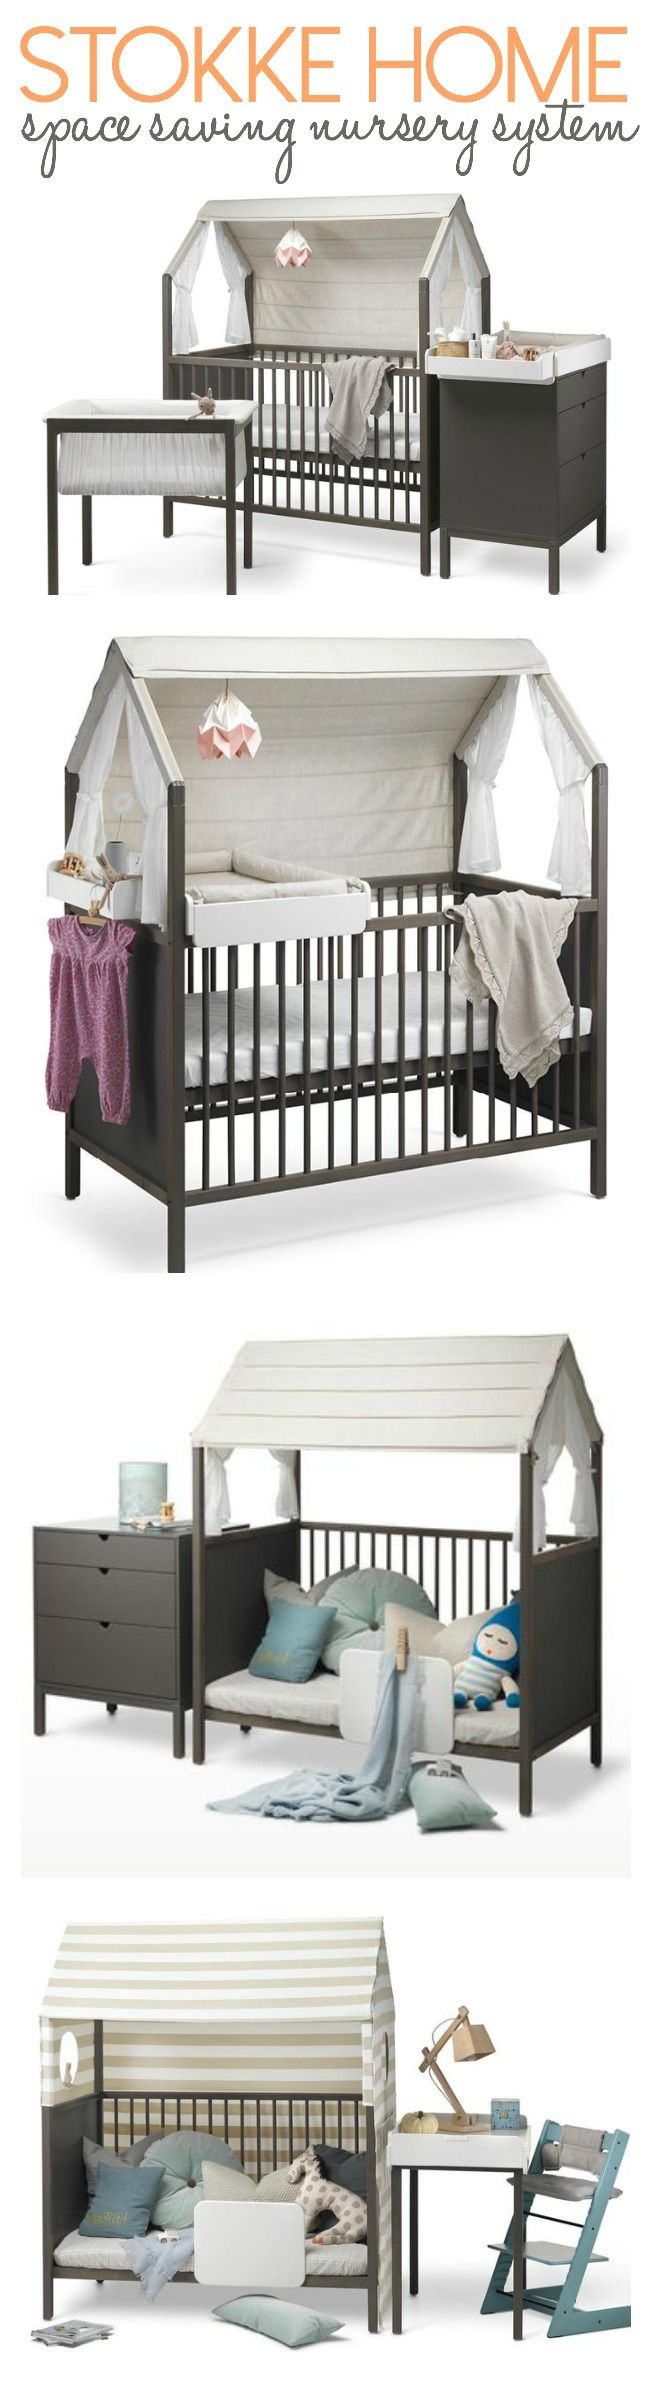 Stokke Home: Little Nursery with Big Possibilities | The Shopping Mama